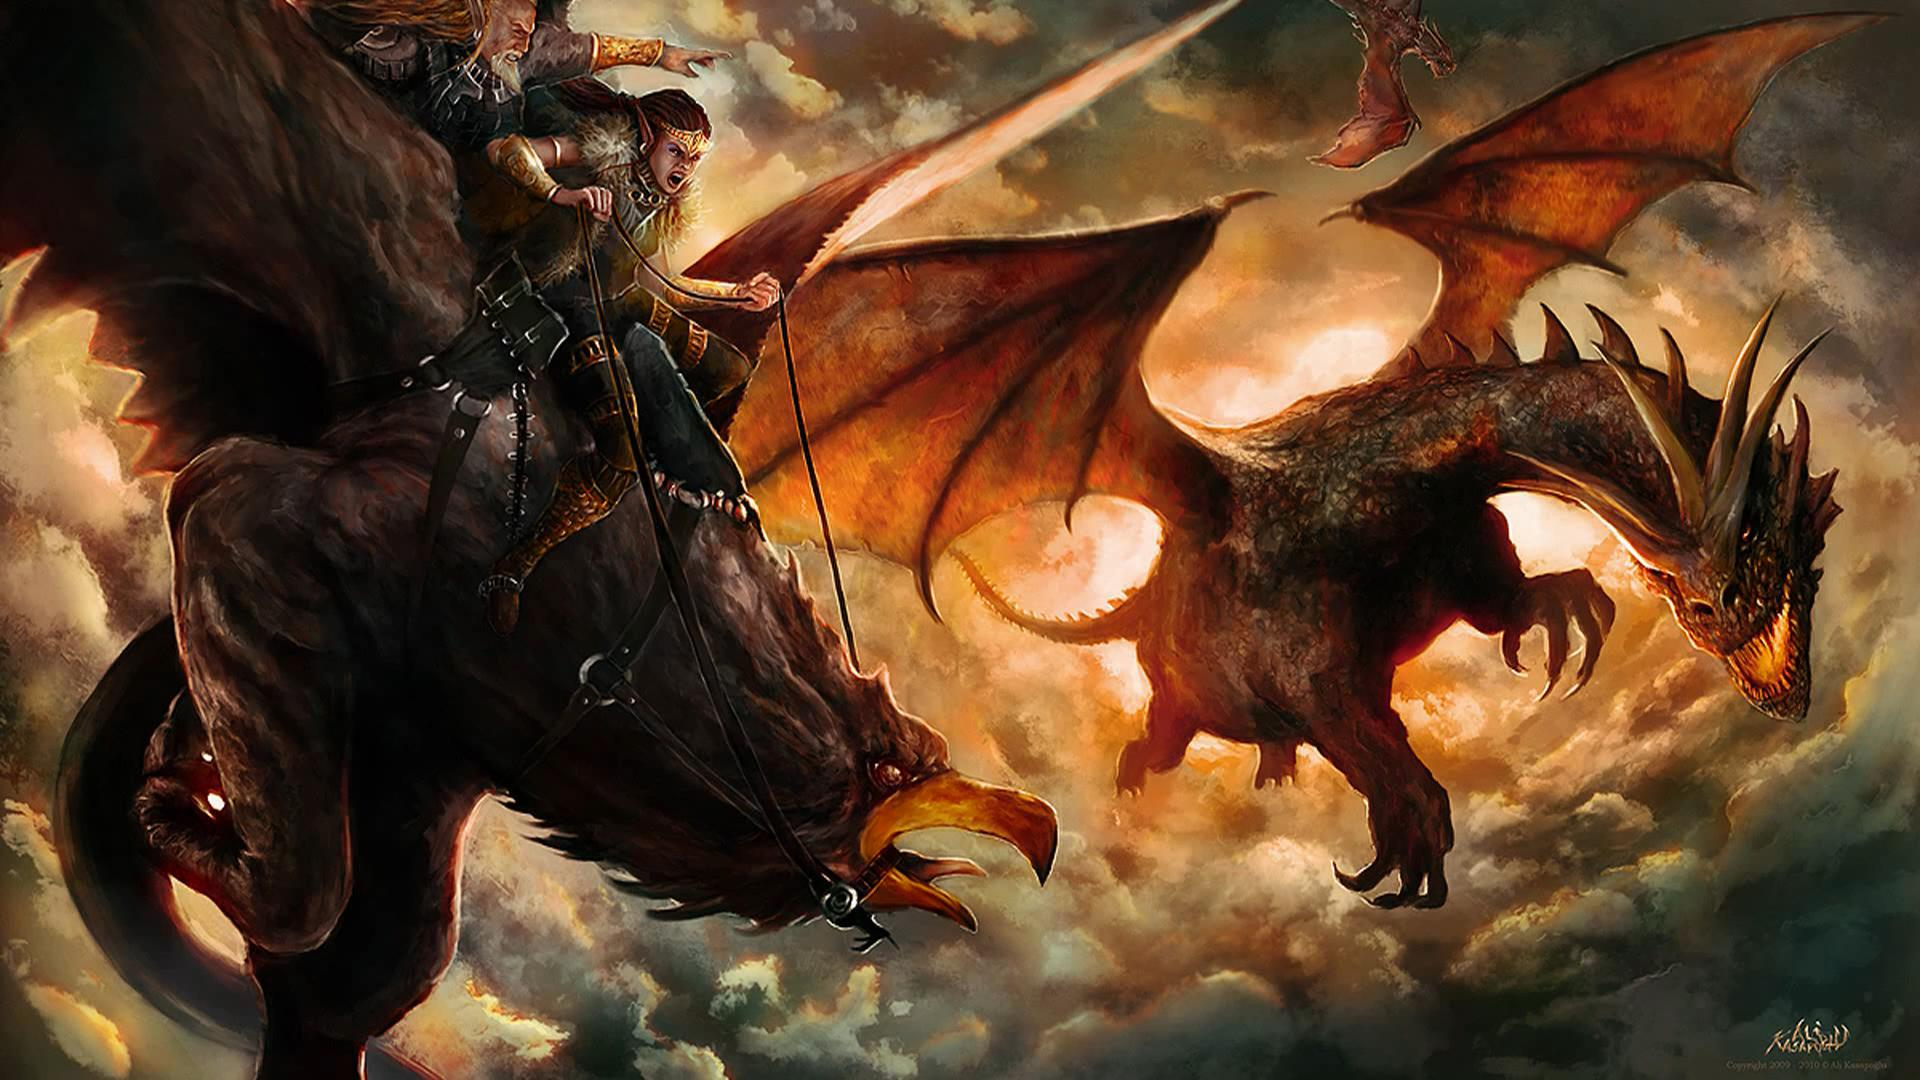 1920 x 1080 dragon wallpaper wallpapersafari - Dragon backgrounds 1920x1080 ...